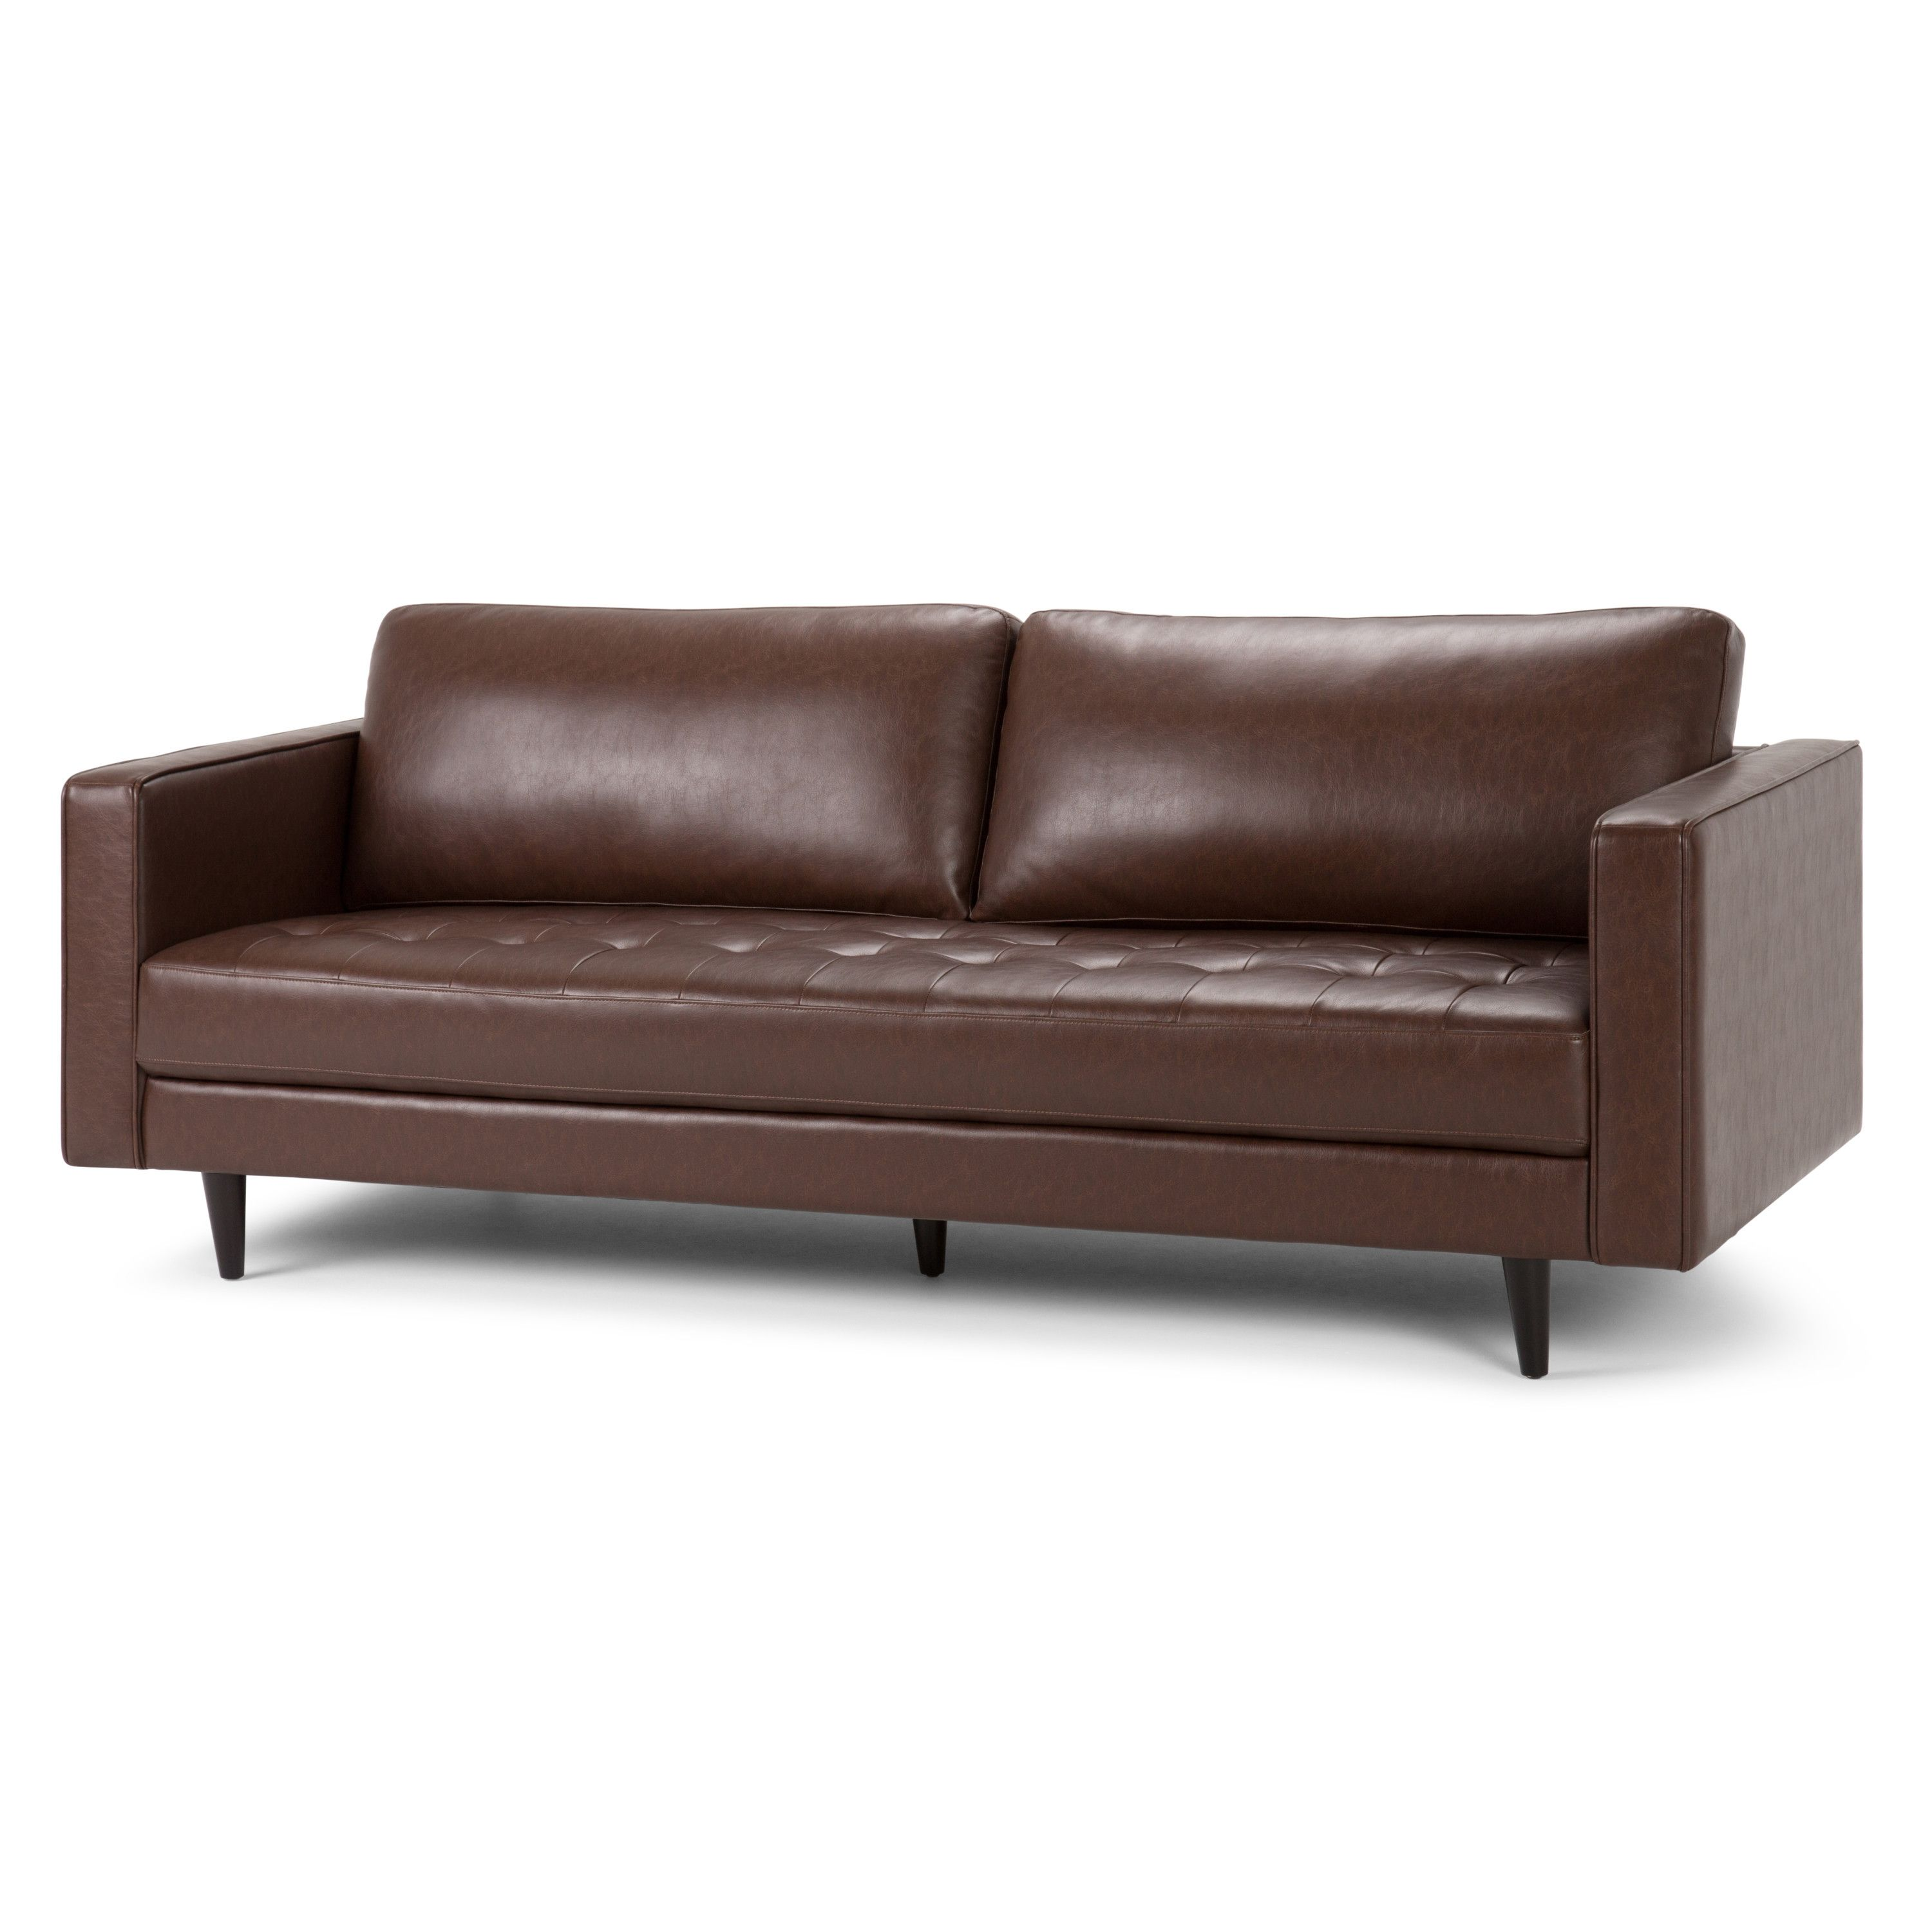 Brooklyn Max Thomas Sofa Bed In Faux Leather Brown Walmart Com In 2020 Faux Leather Sofa Leather Sofa Sofa